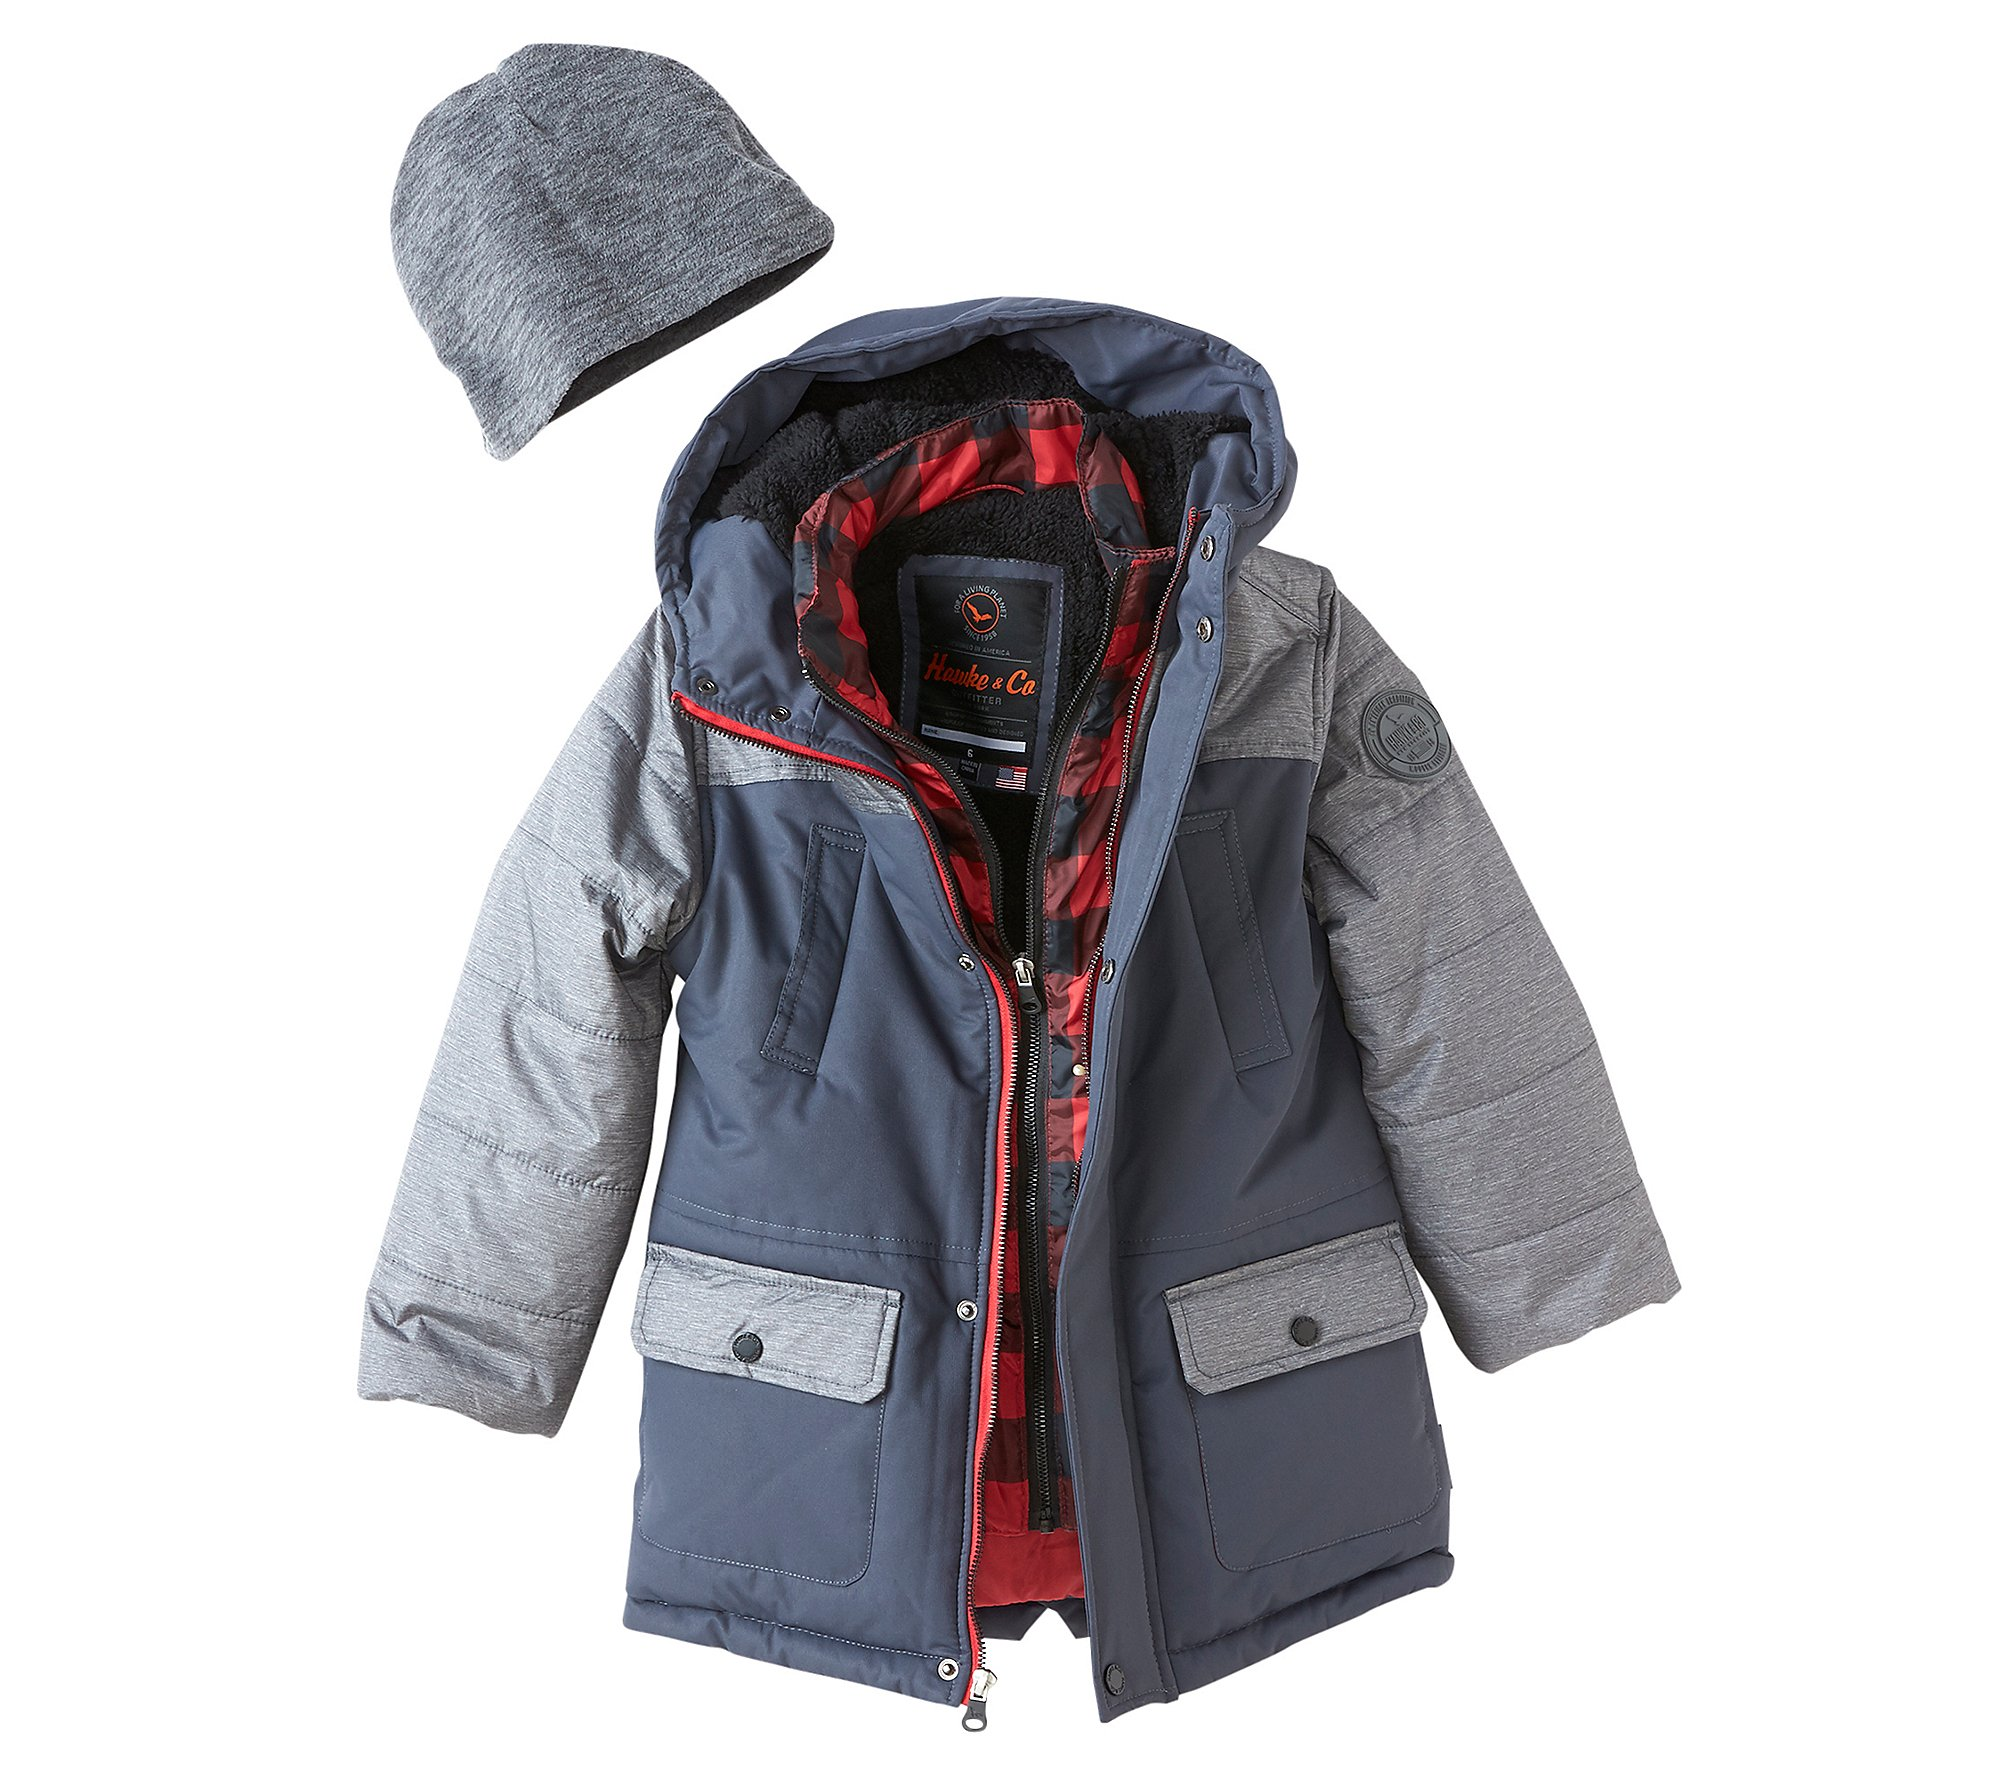 Hawke & Co Boys' 4-7 Parka Jacket with Hat Smoked Peat 6